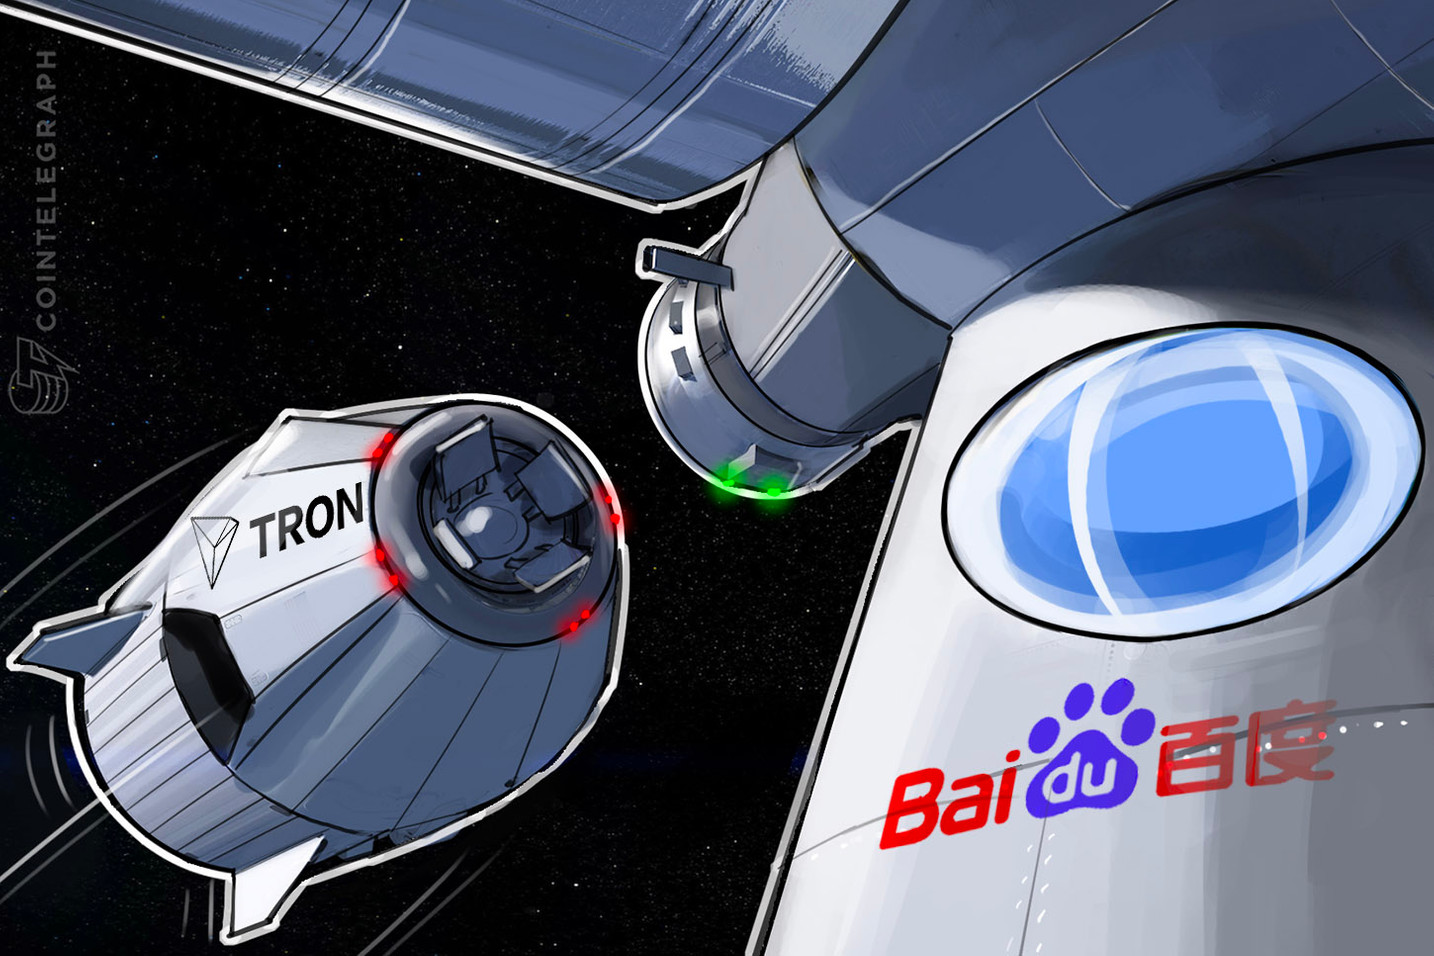 Unconfirmed: TRON to Partner with 'China's Google,' Baidu